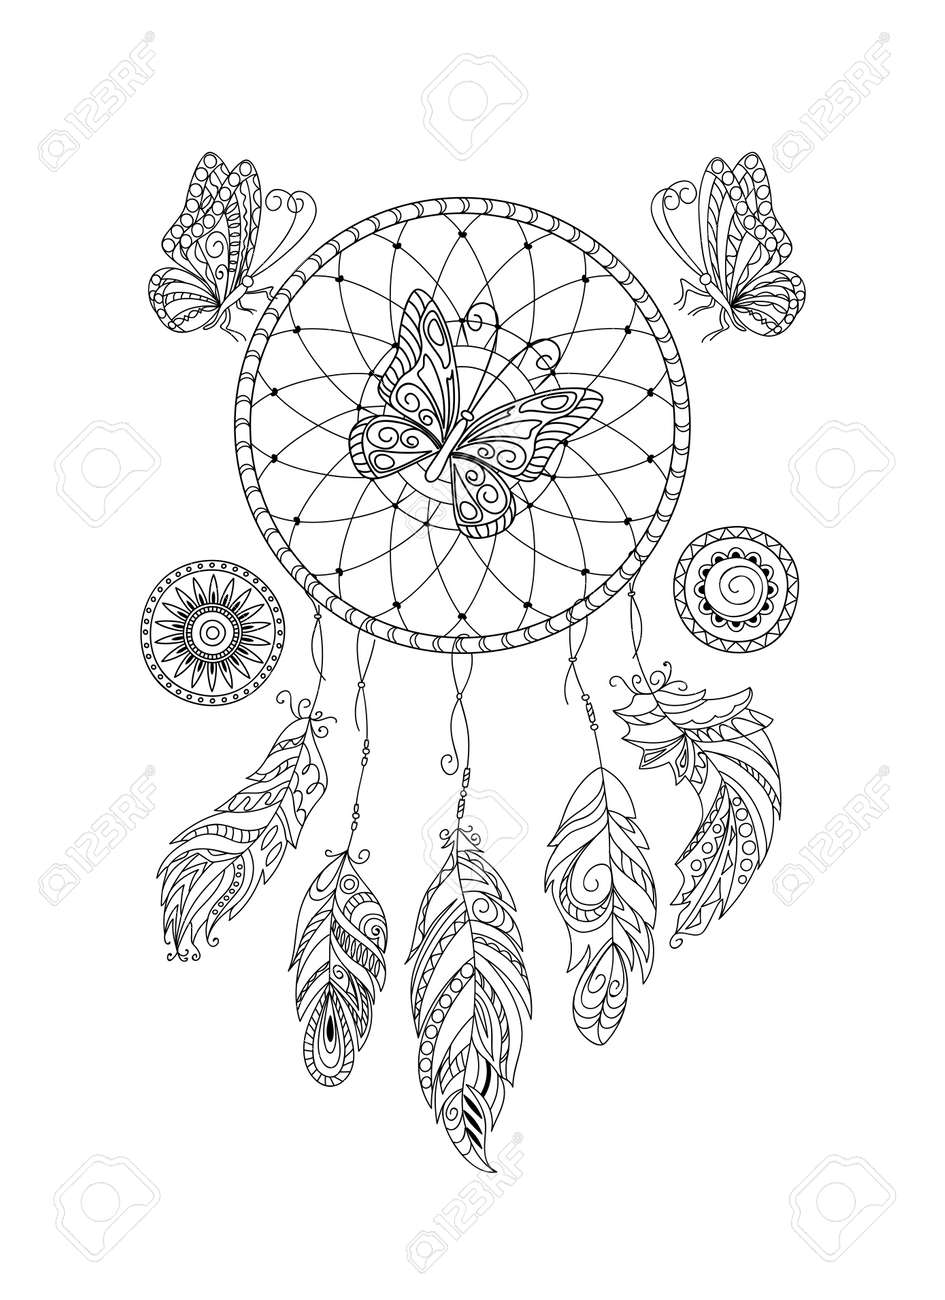 Coloring Page With Dreamcatcher Patterned Feathers And Butterflies For Adult Antistress Coloring Book Album Wall Mural Art Tattoo